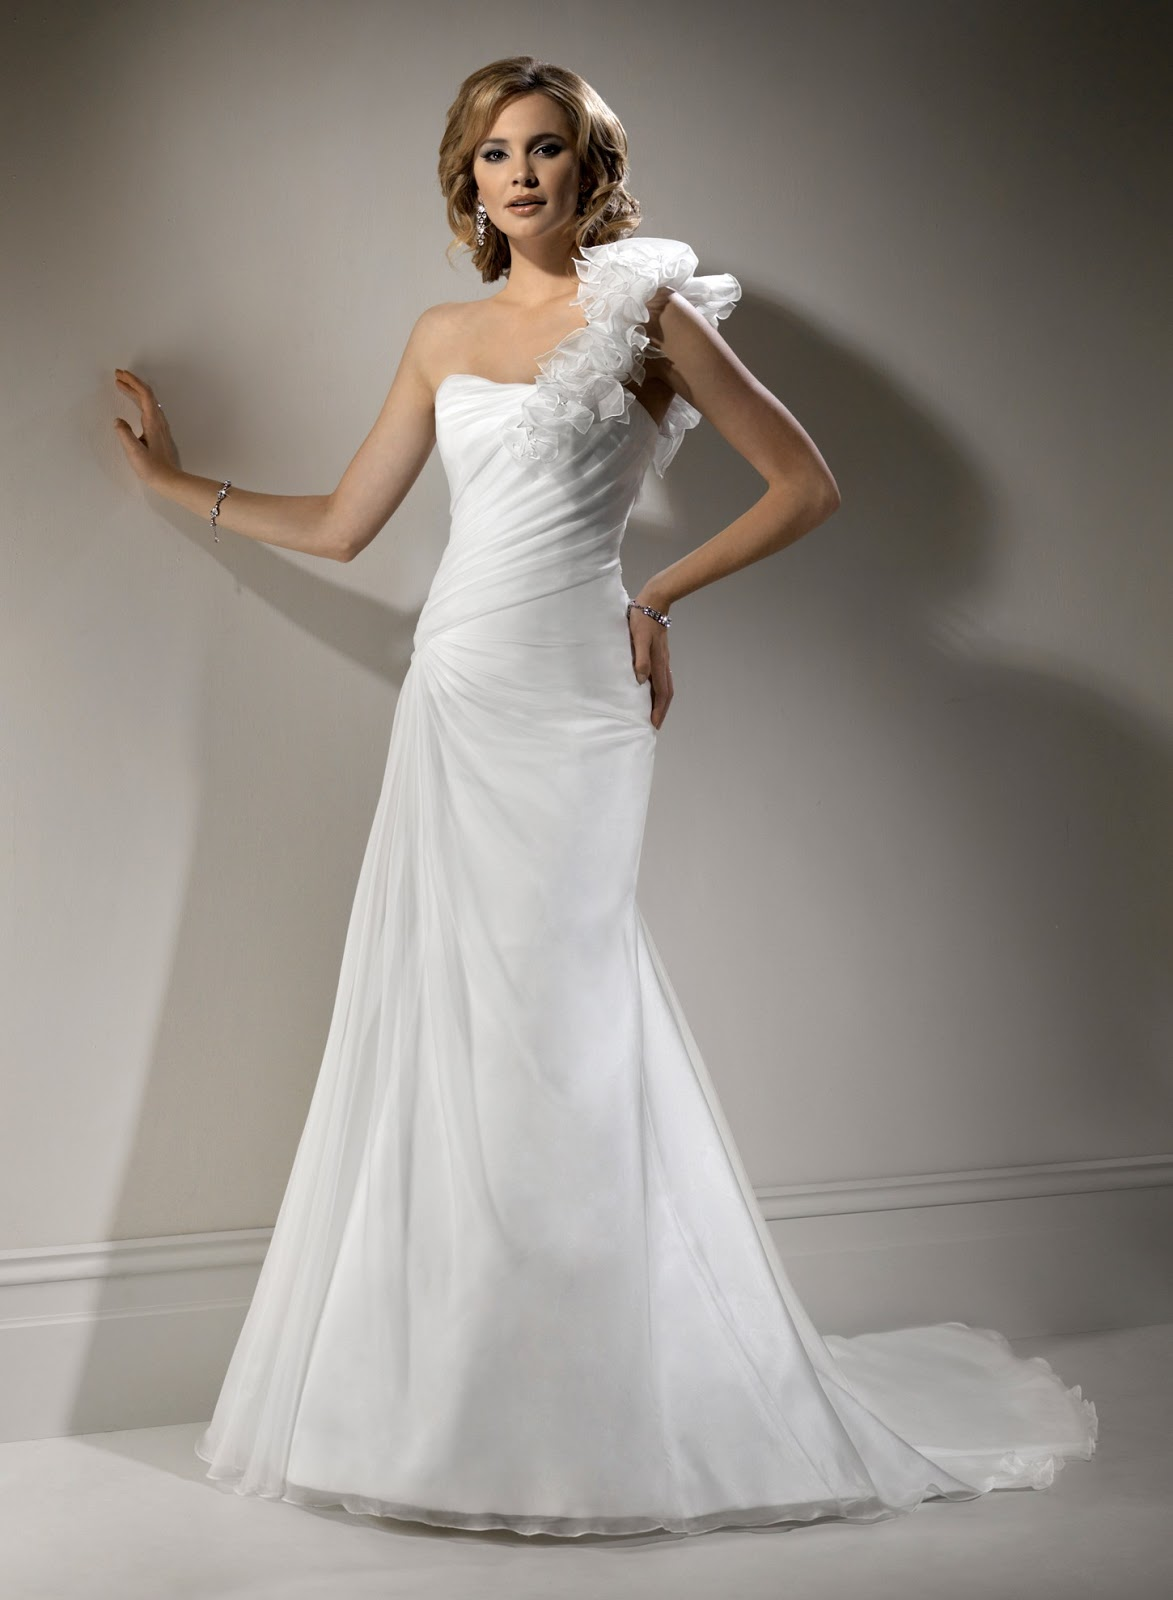 Blog for dress shopping wear tight fitting wedding gowns for Tight fitting wedding dresses